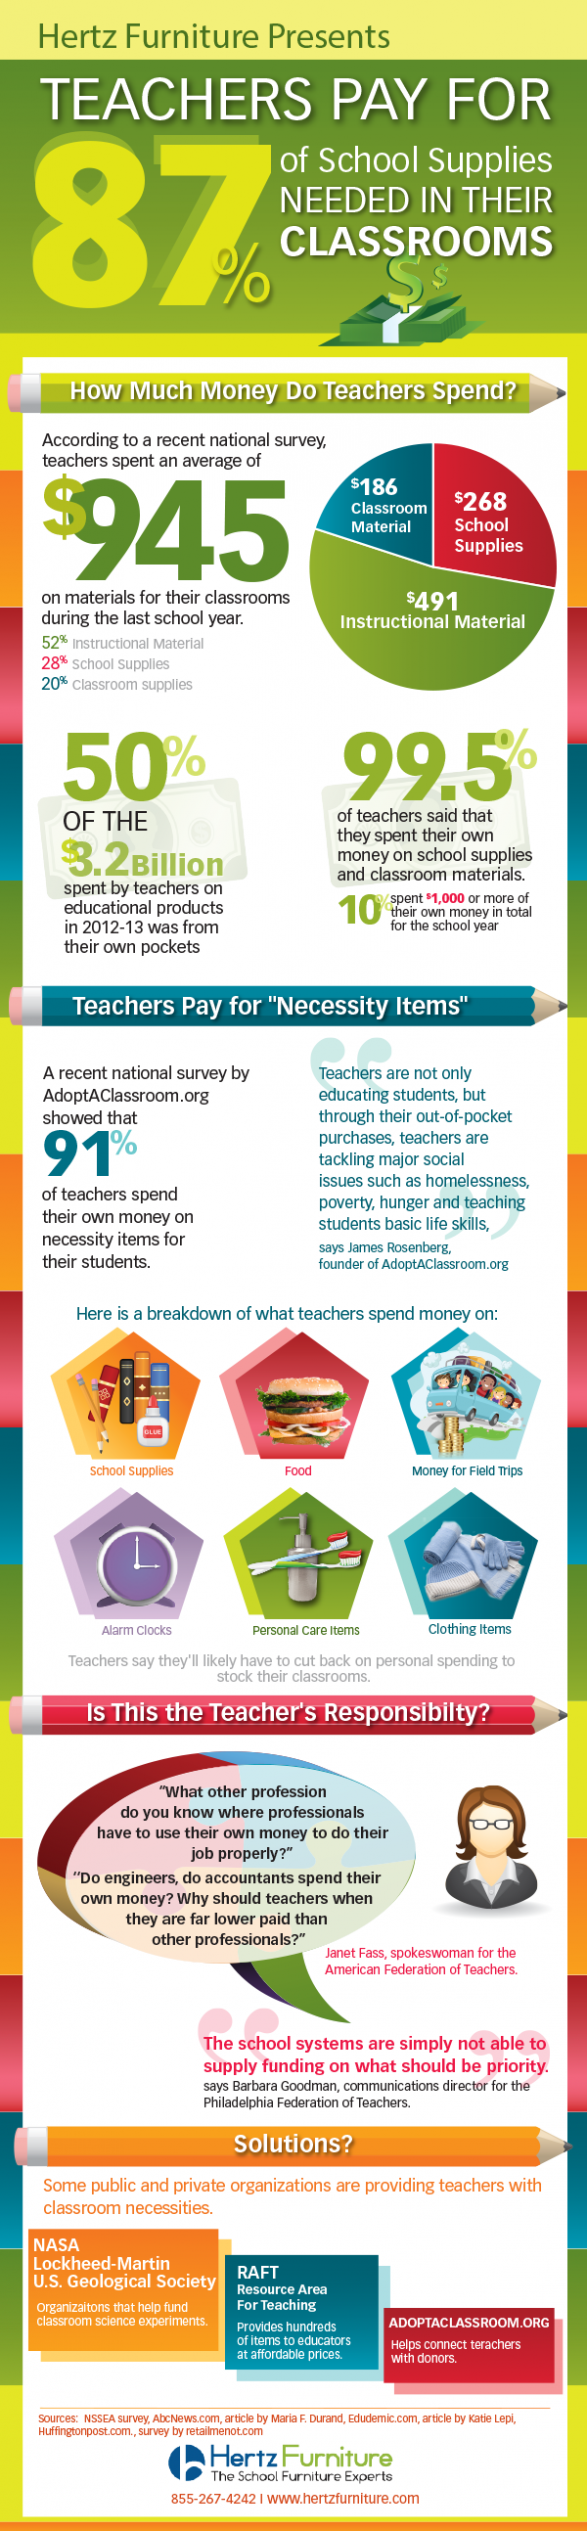 Teachers pay for 87% of the school supplies needed in their classrooms